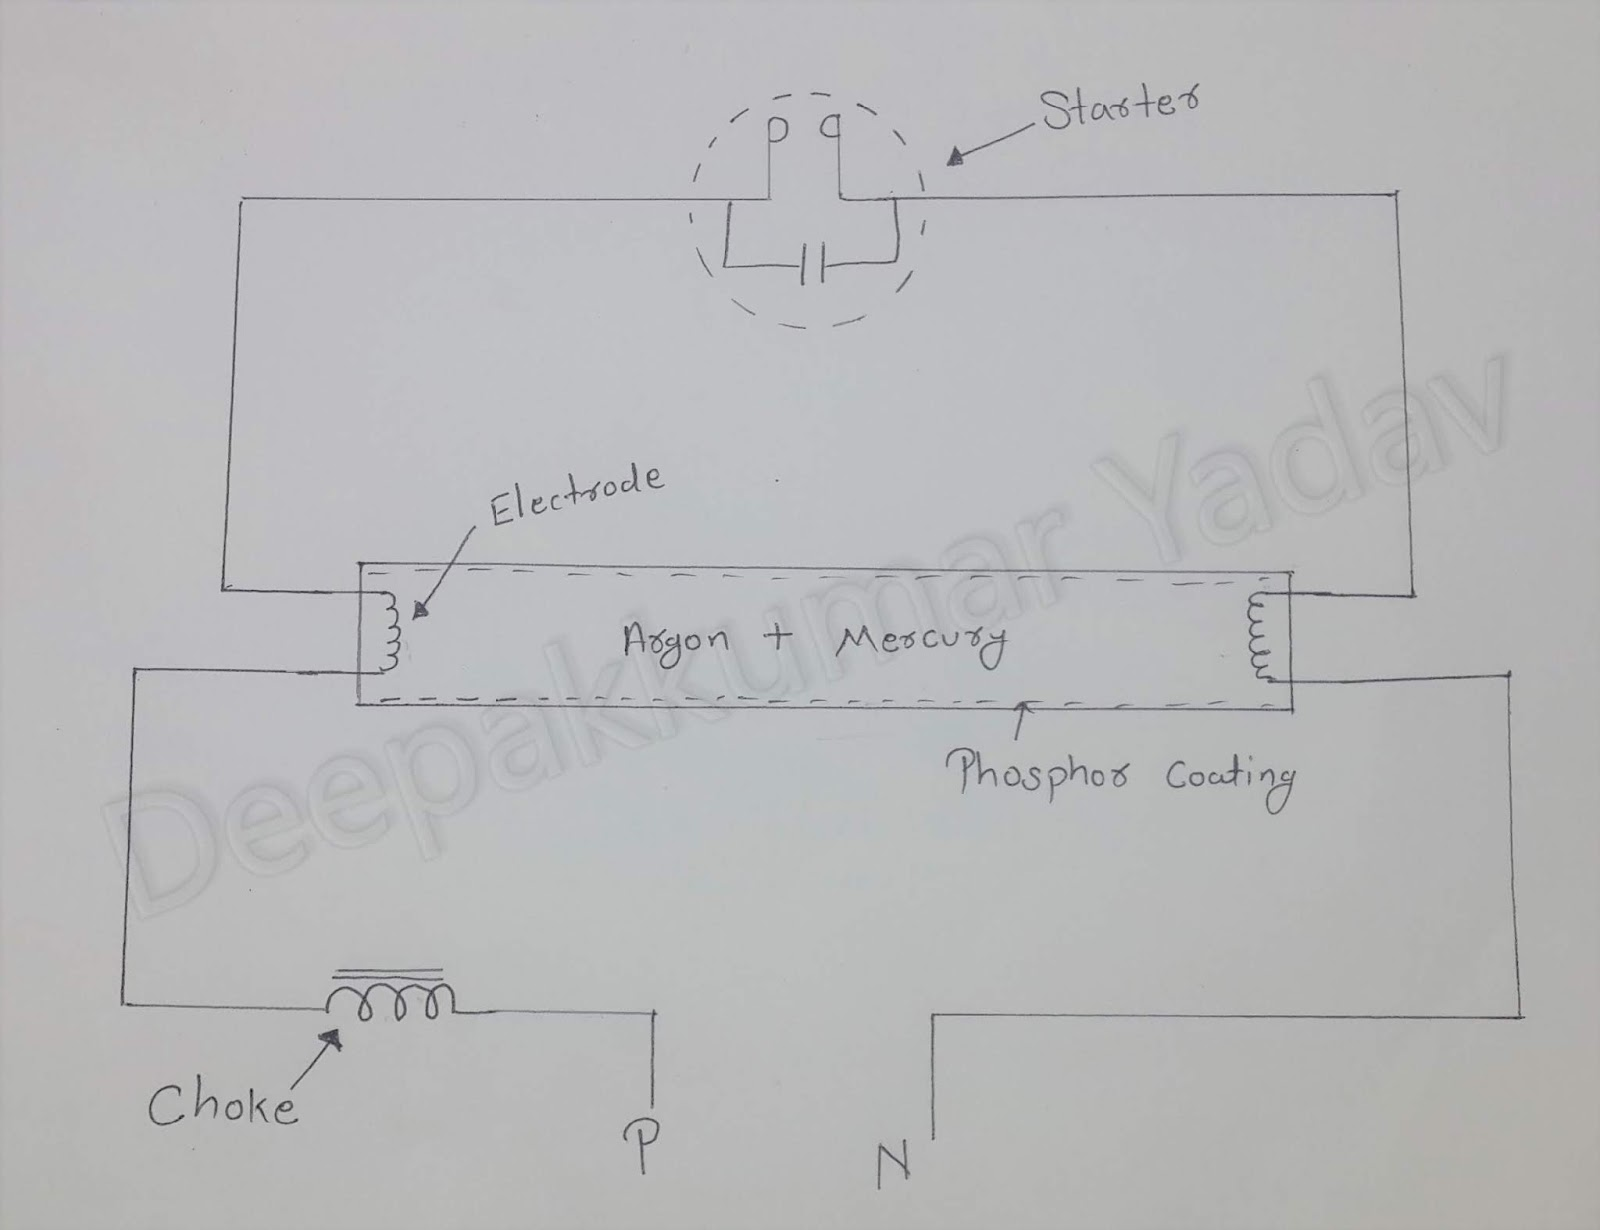 Deepakkumar Yadav How Does A Fluorescent Tube Light Work